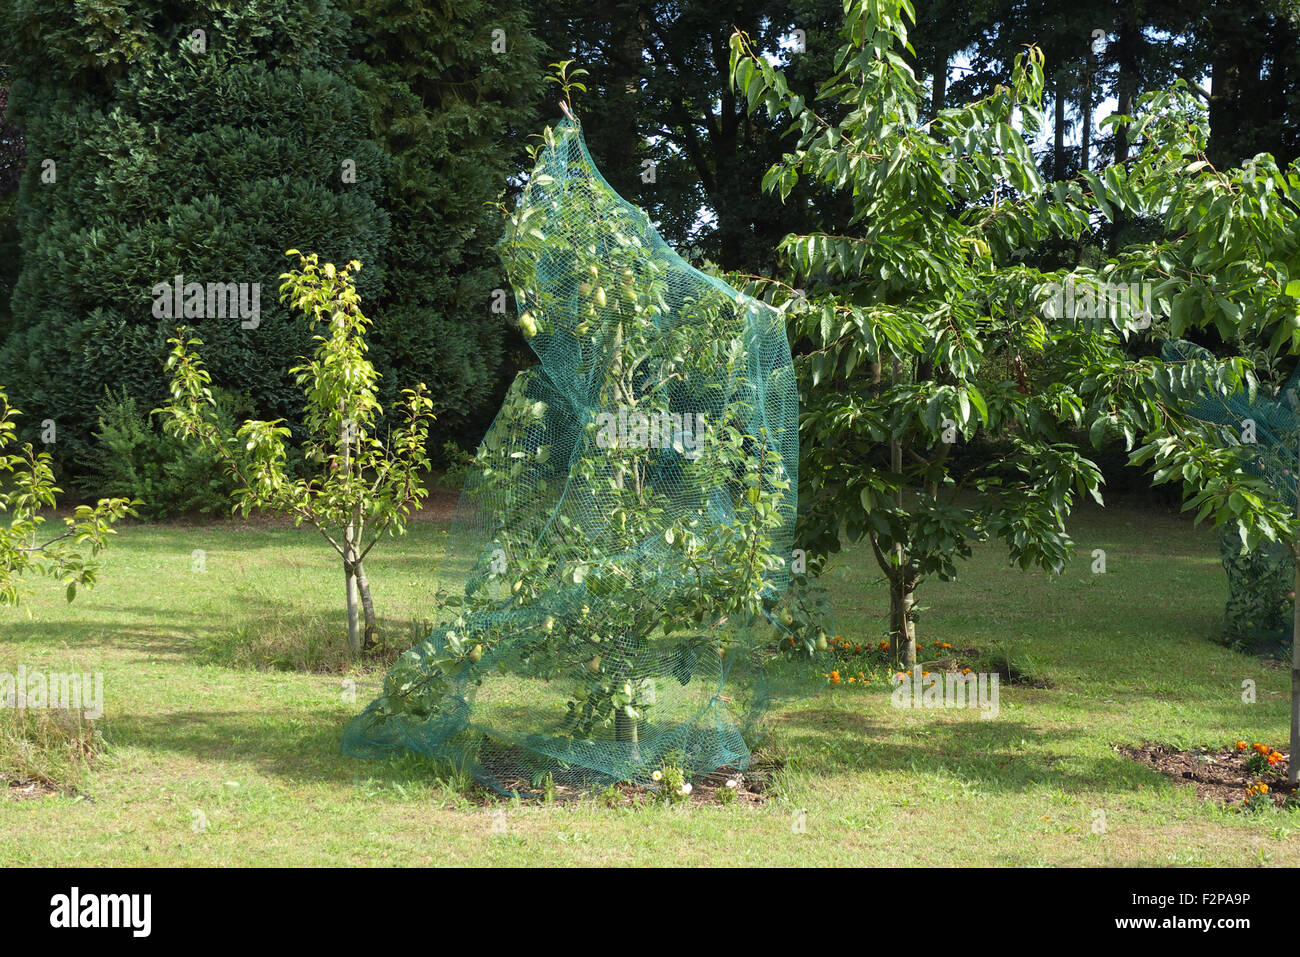 Pear tree with netting to keep birds off the fruit, Netherlands. - Stock Image